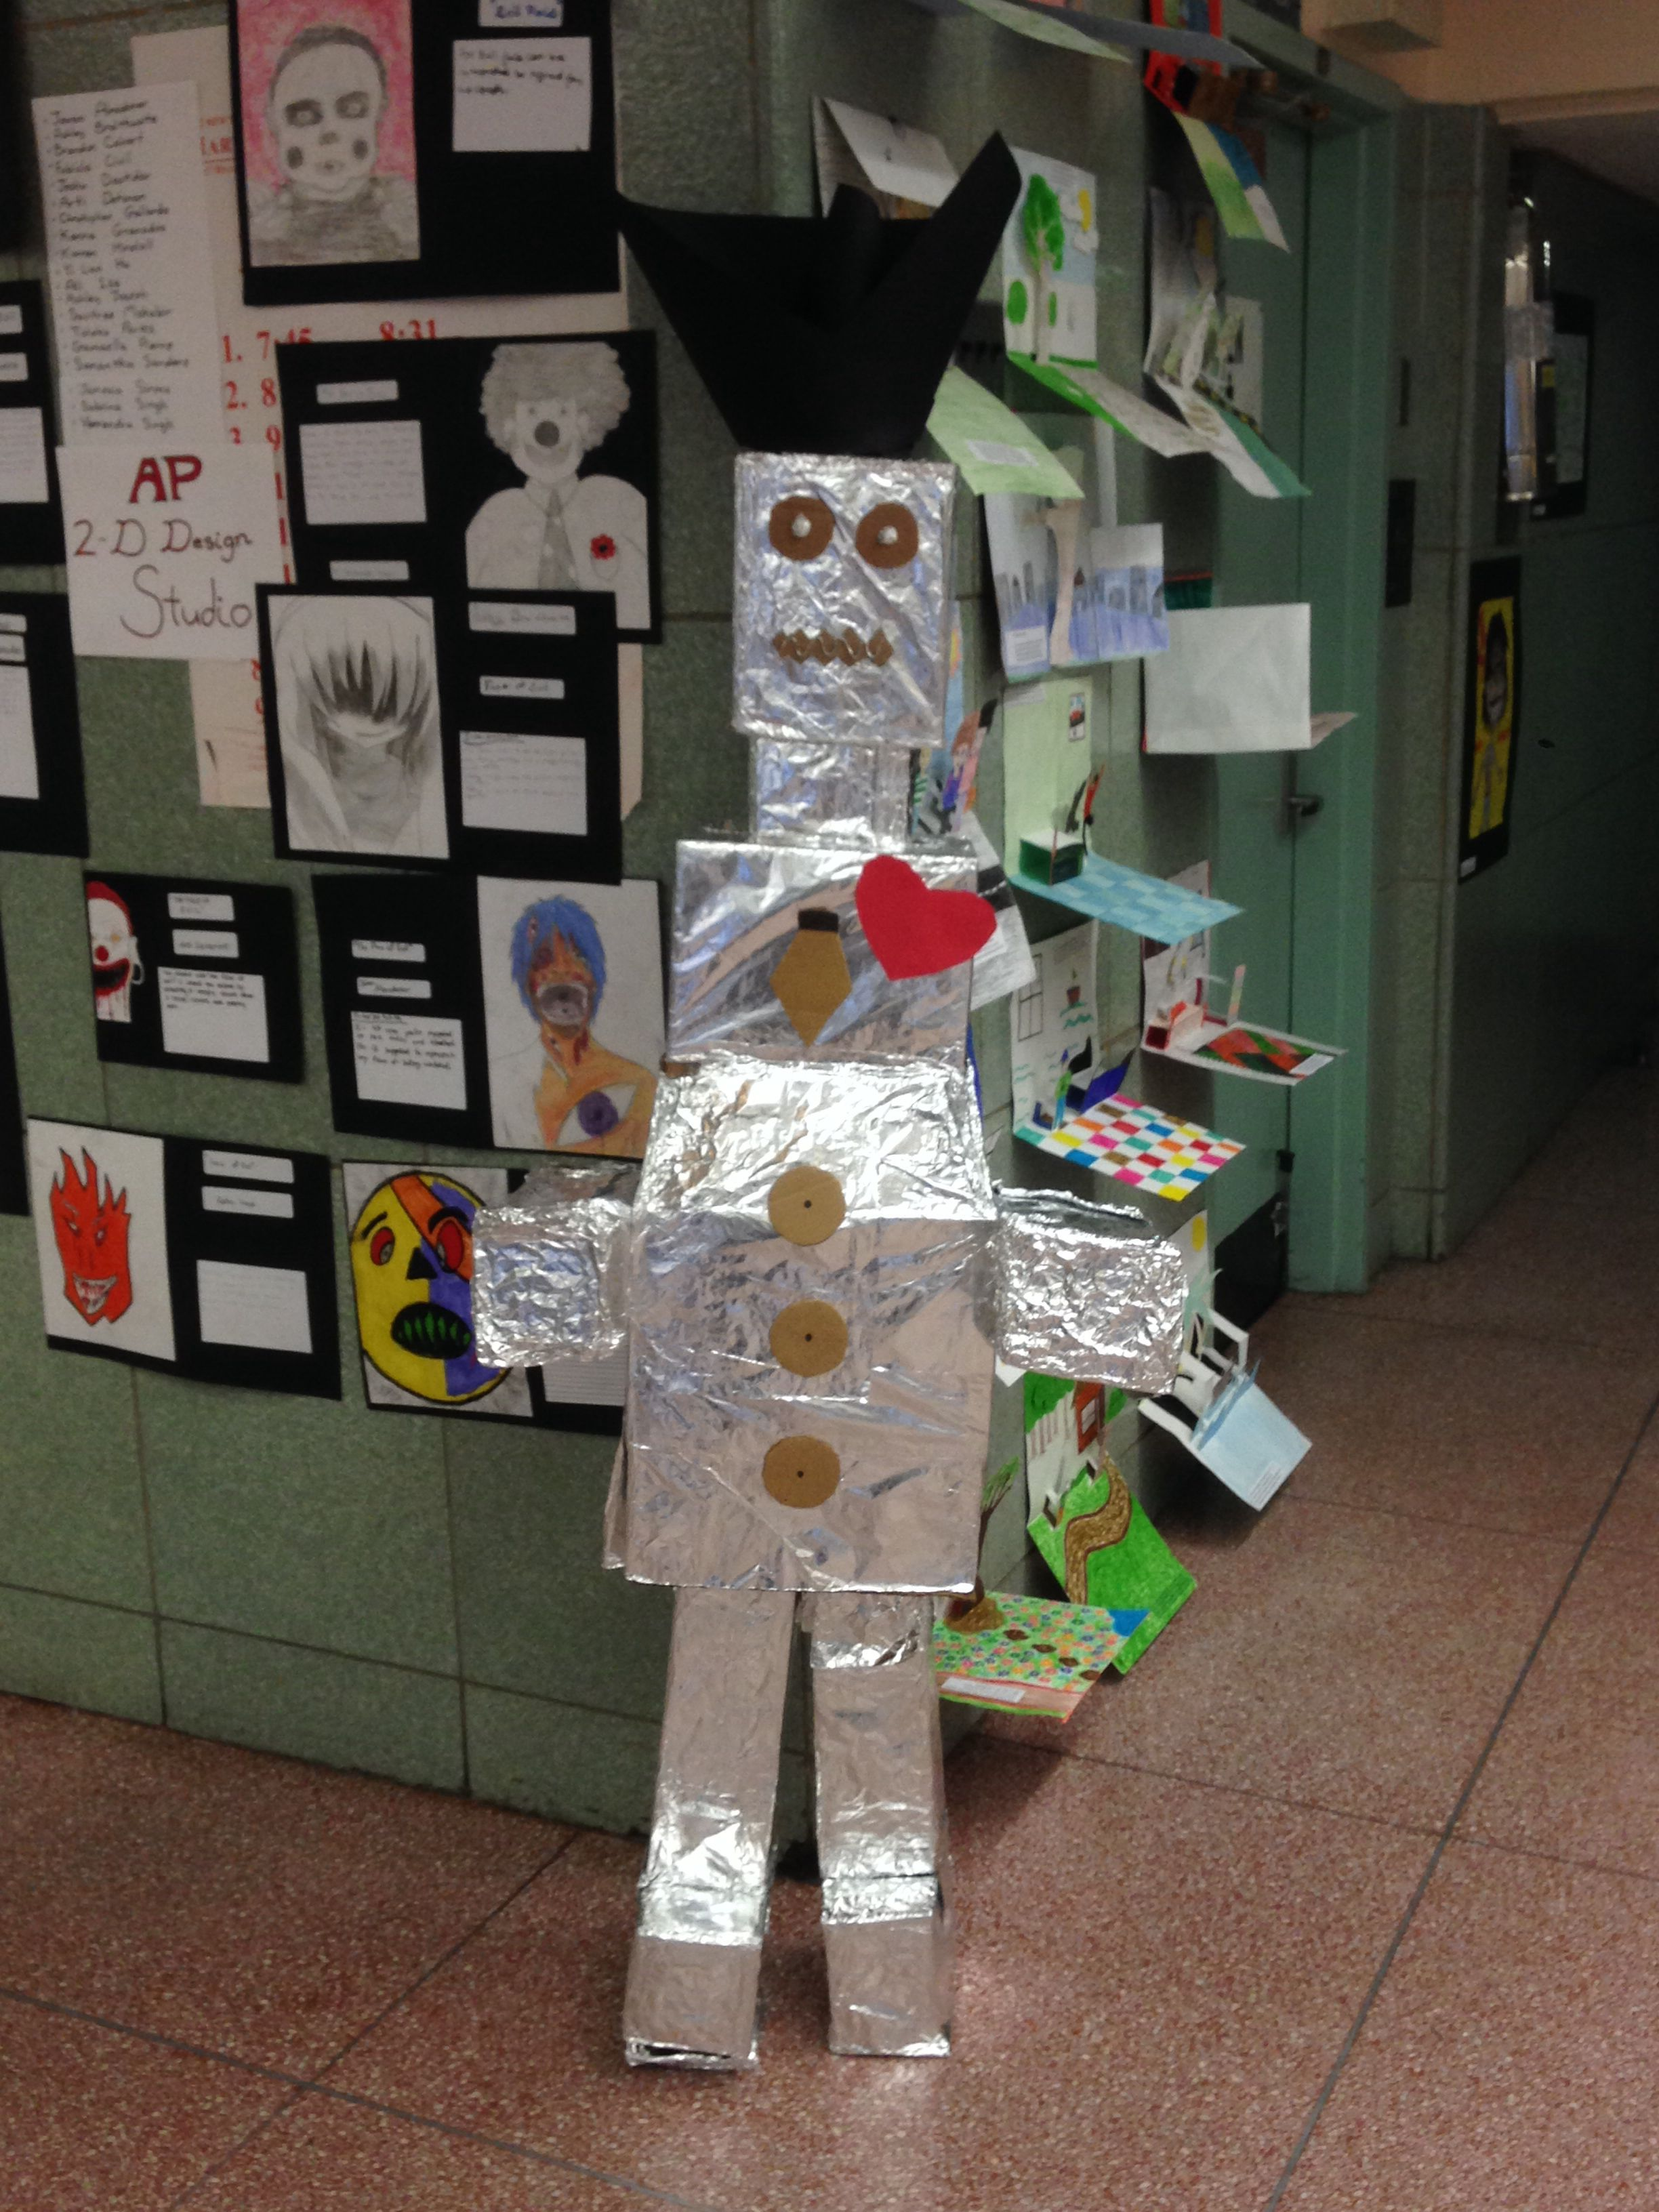 This was made by high school students. I put about 5-6 students in groups and they had to come up with a design for their life size figure that was then made out of cardboard. This was during while I student taught for two 3D classes.